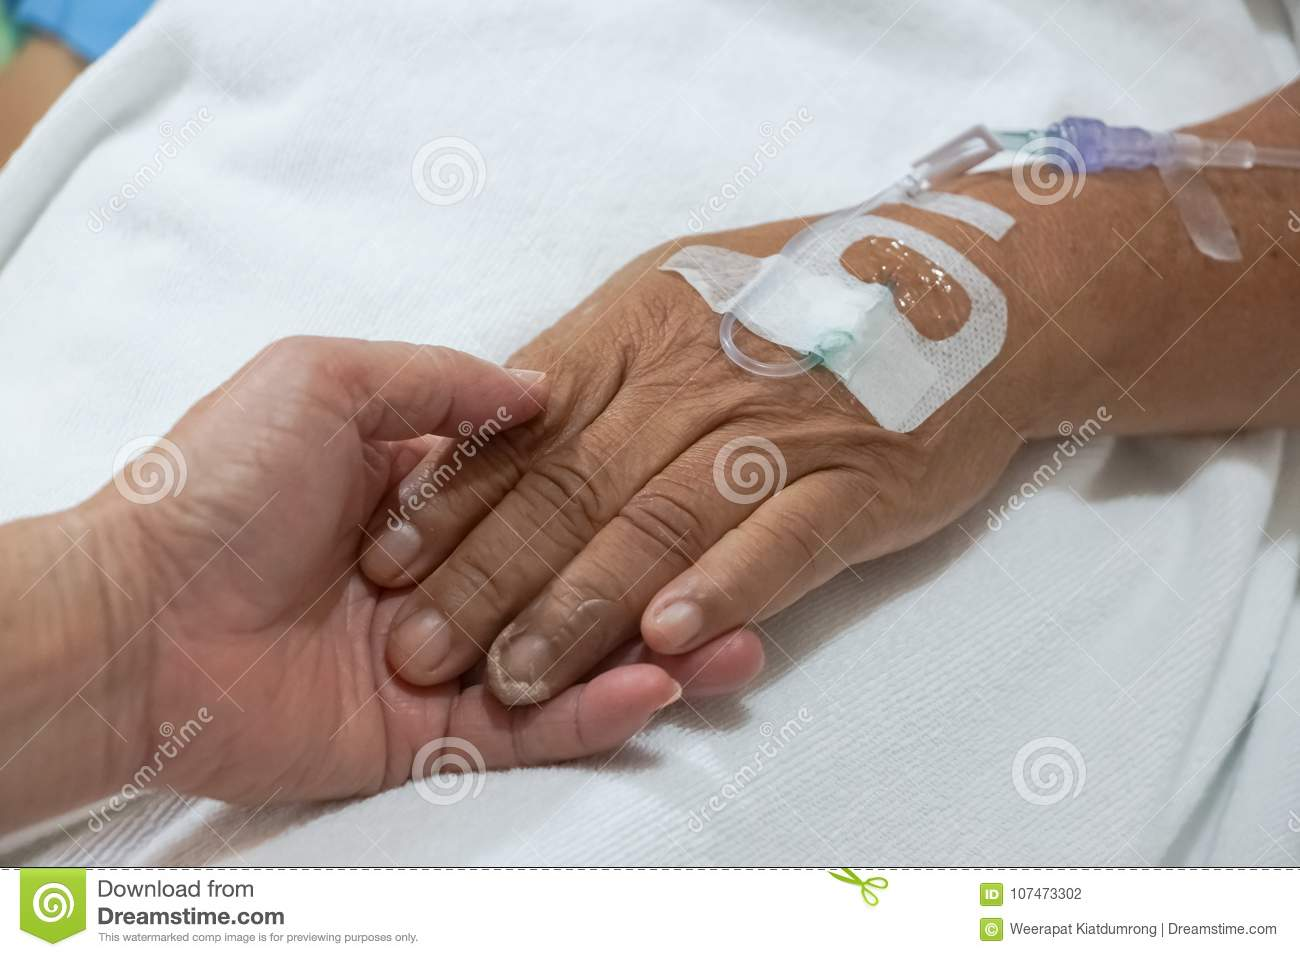 Old hands holding each other with IV solution